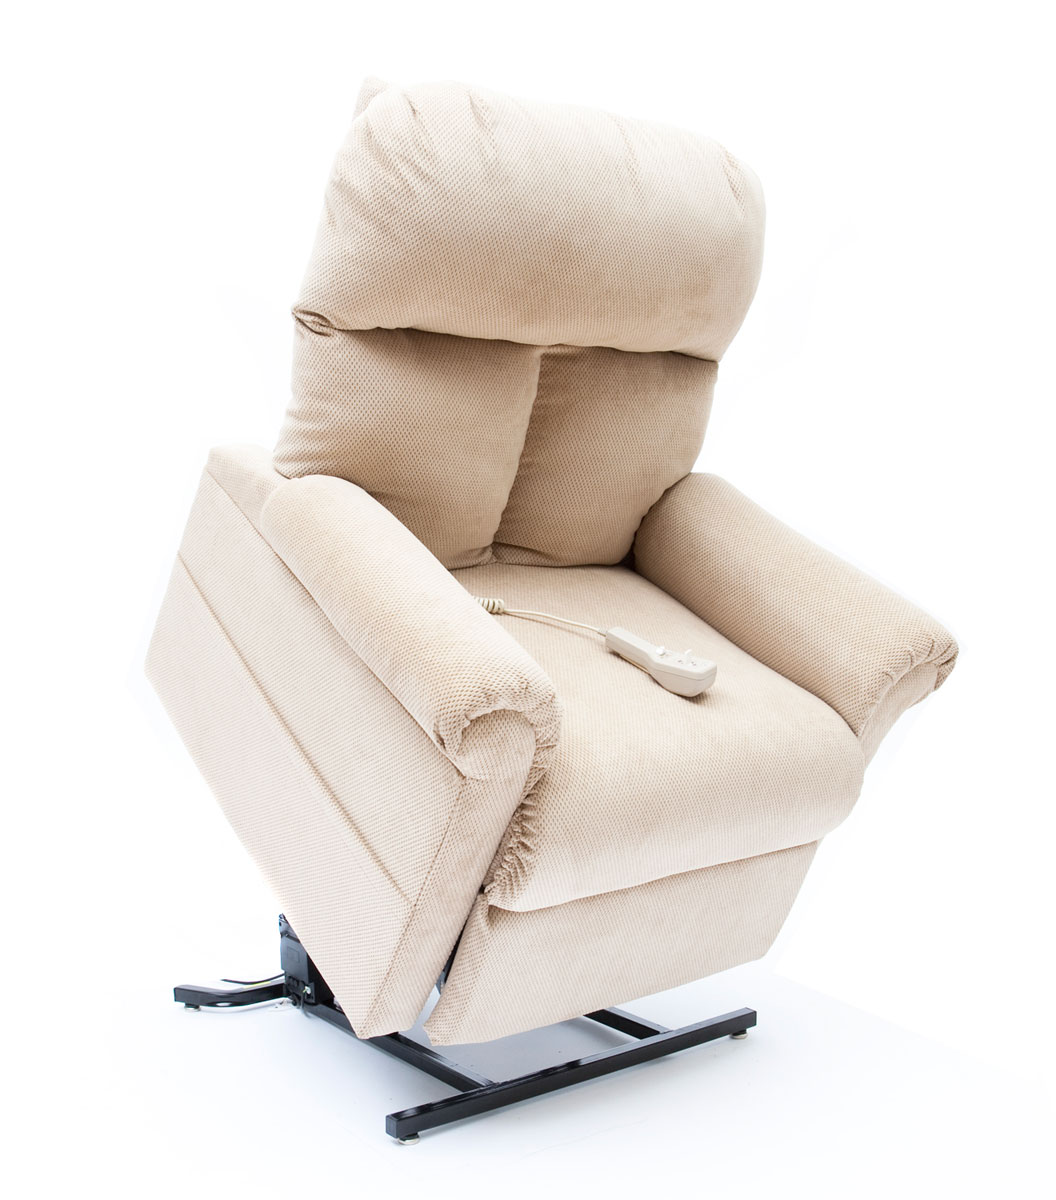 infinite position recliner power lift chair polyester covers for sale mega motion lc 100 chaise